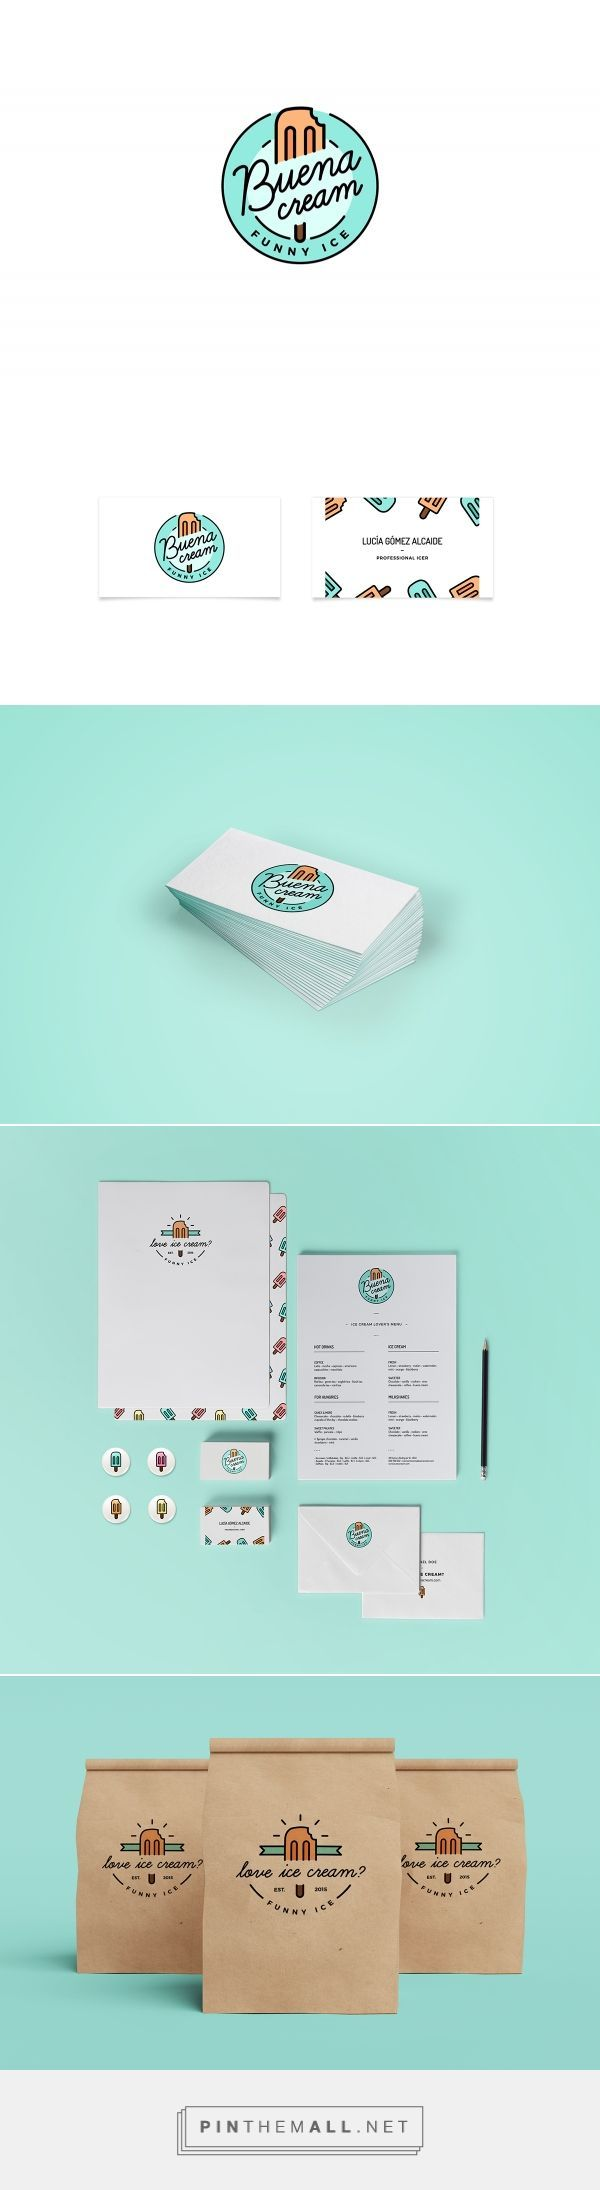 Buena Cream Ice Cream Shop Branding by Lucia Gomez | Fivestar Branding Agency – Design and Branding Agency & Curated Inspiration Gallery: